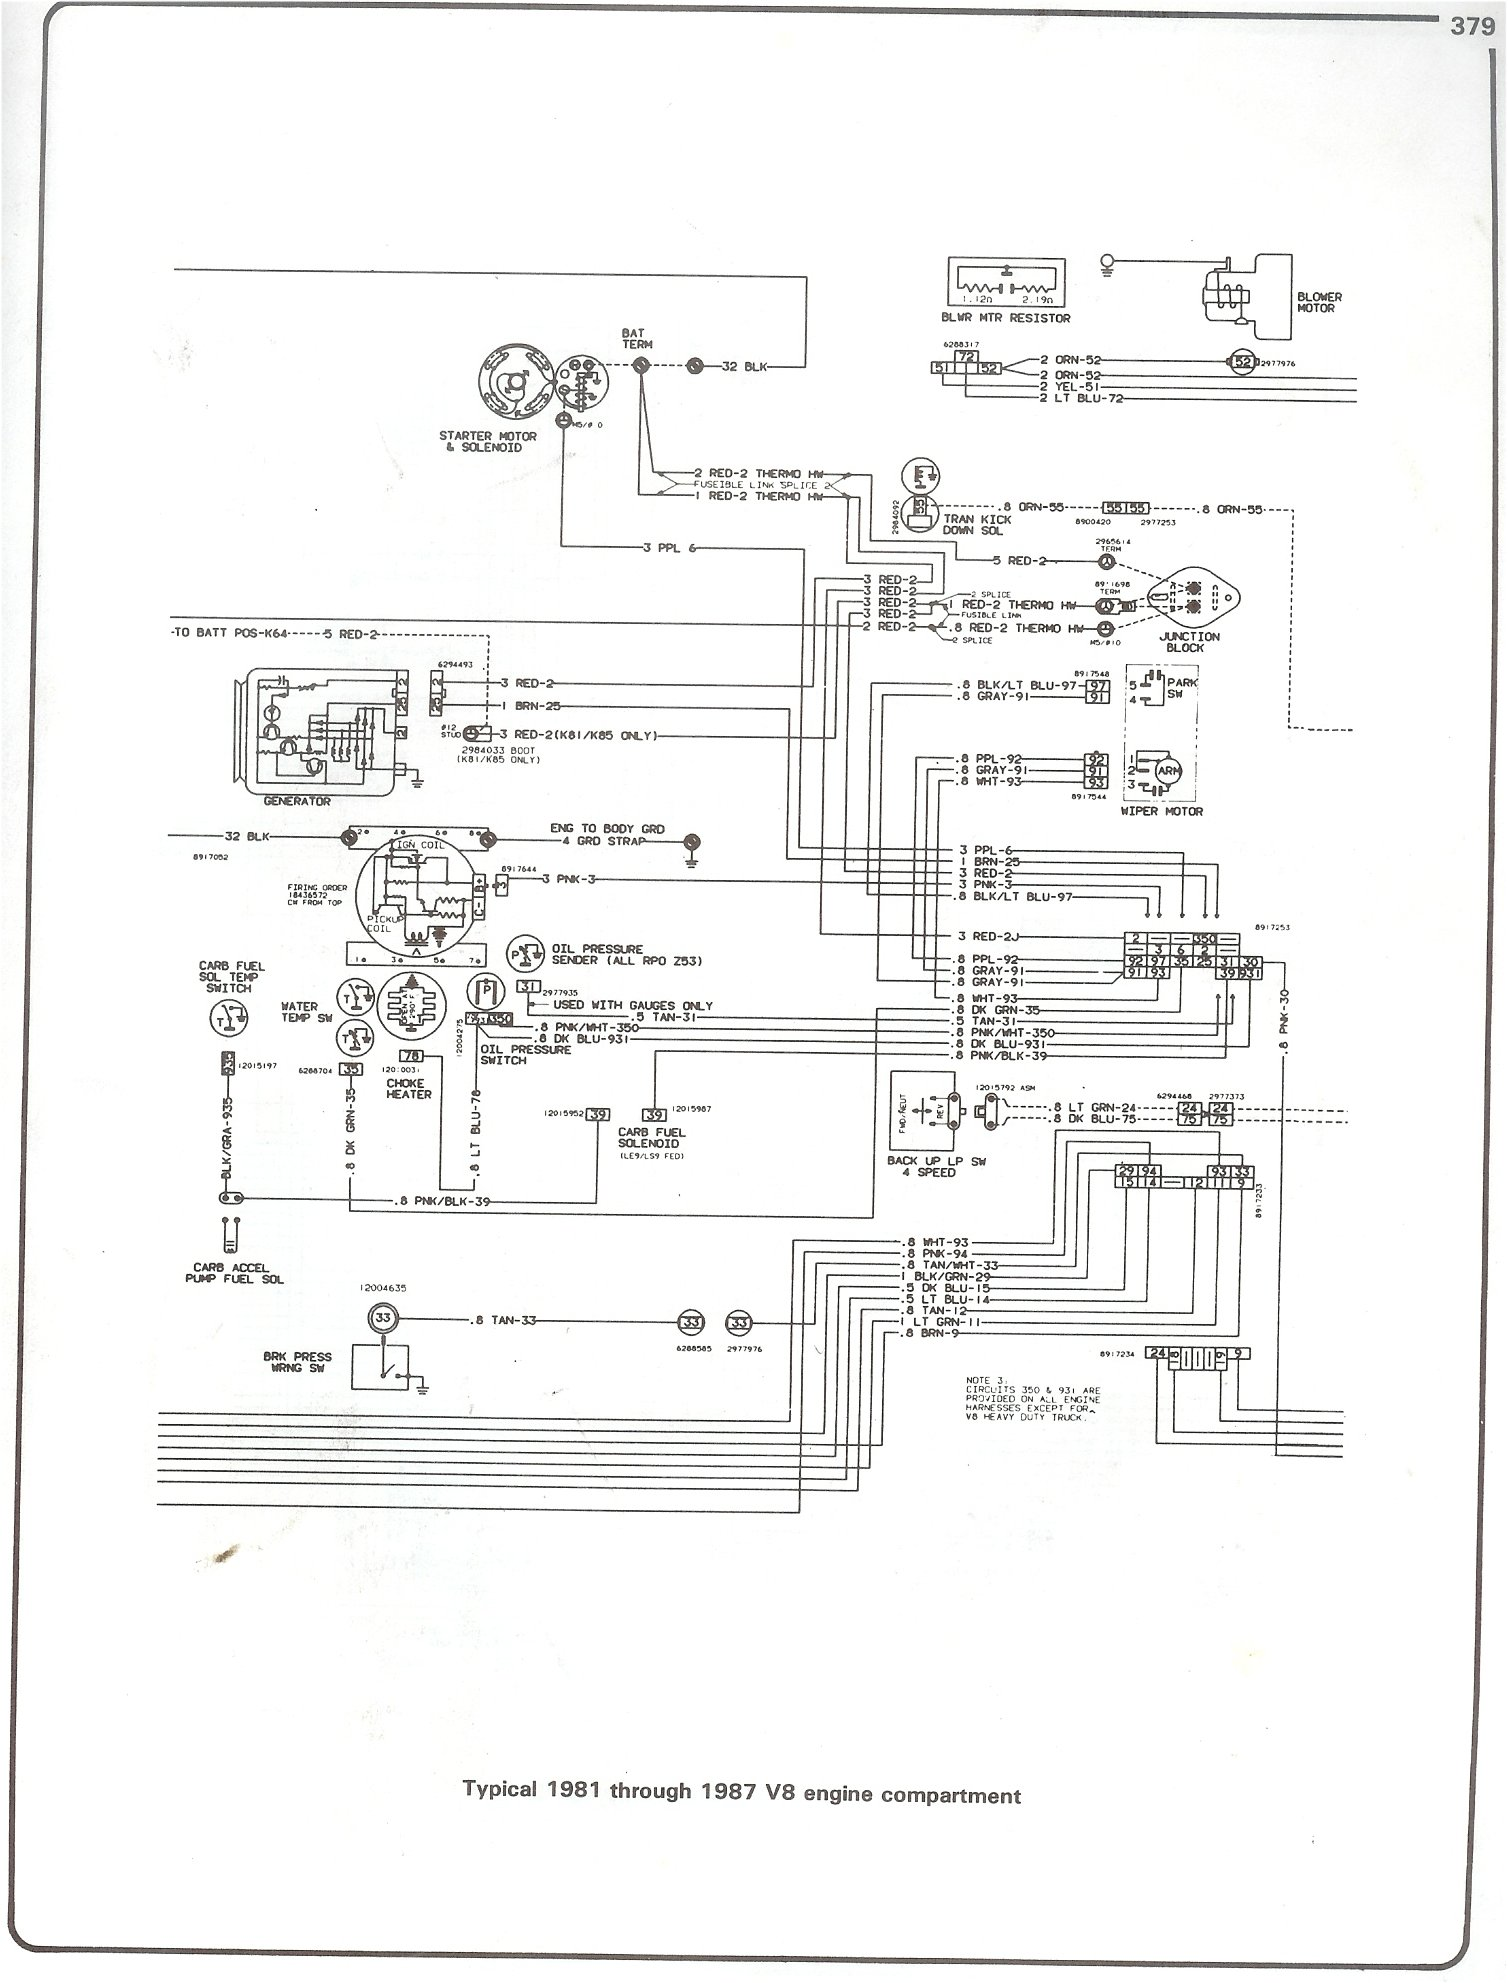 81 87_V8_engine complete 73 87 wiring diagrams Chevy Engine Wiring Harness at crackthecode.co